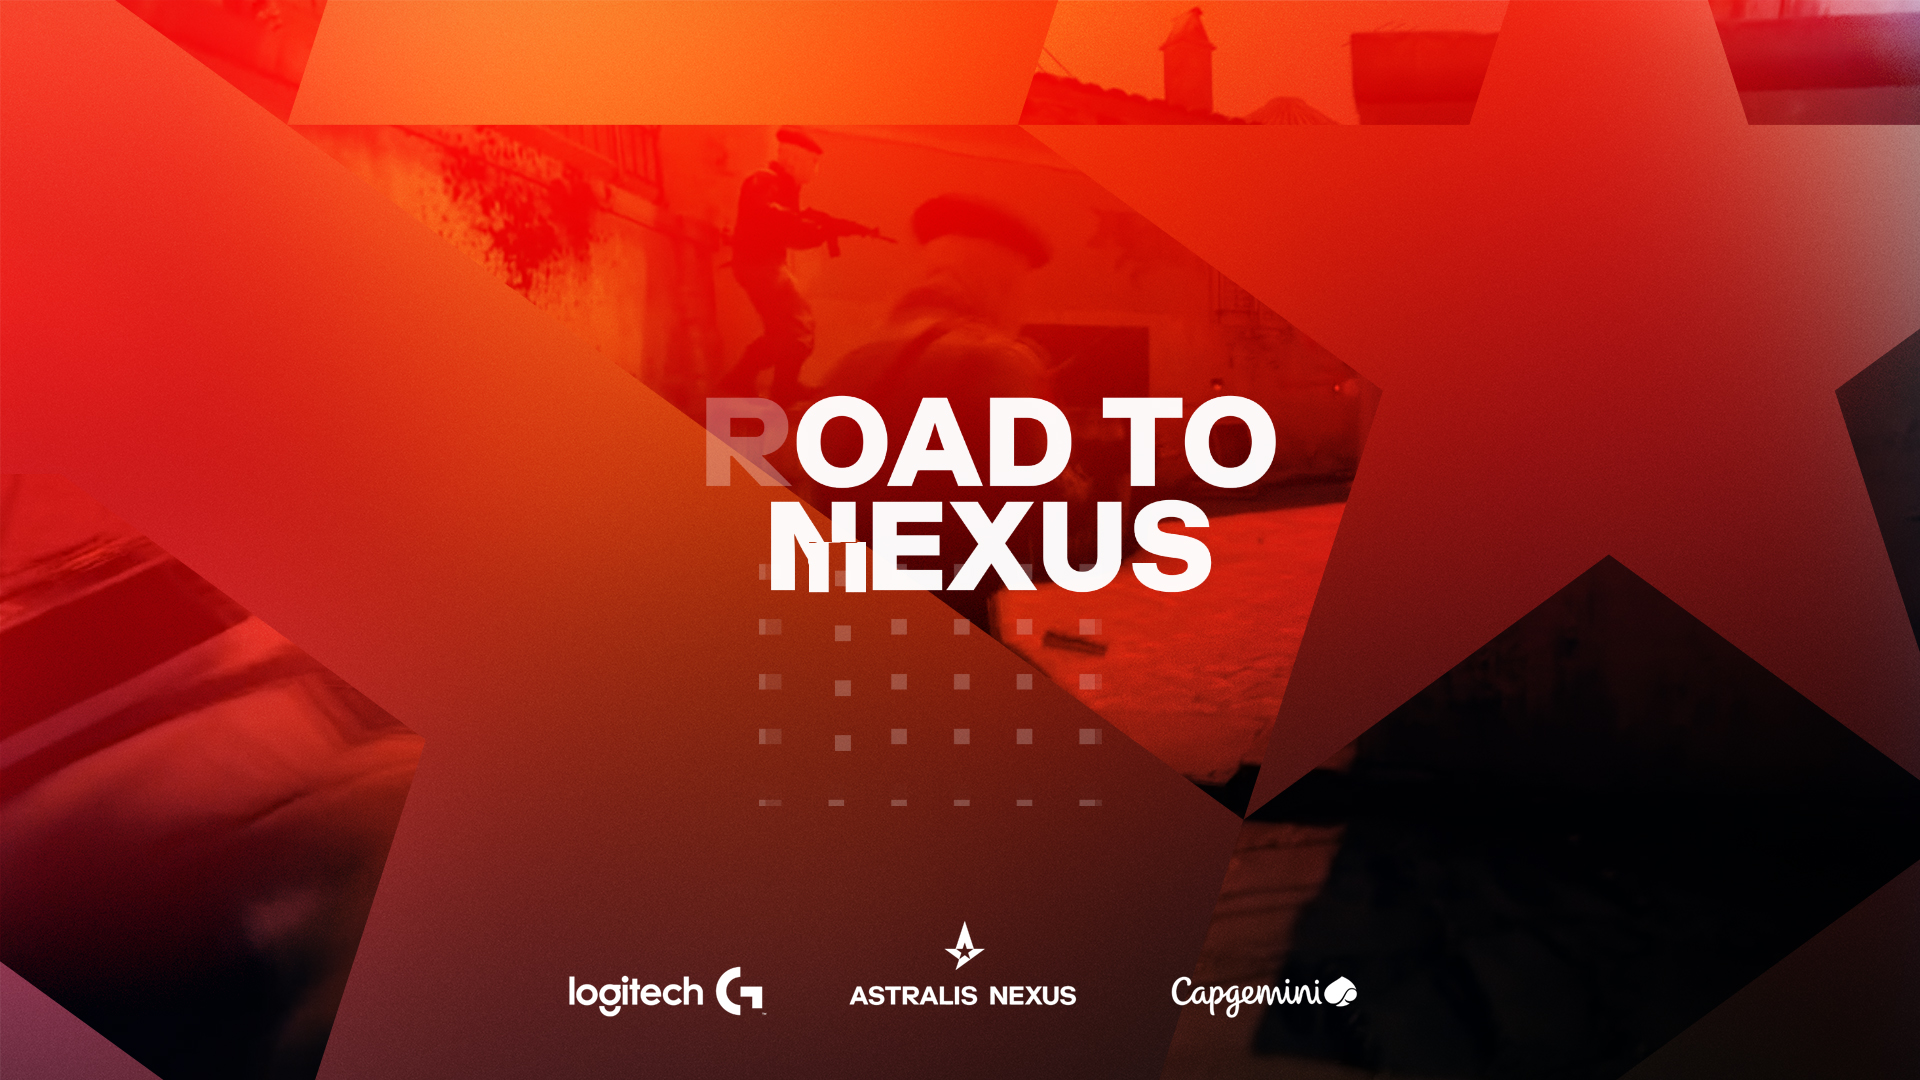 Astralis lancerer ny, stor Counter-Strike turnering for alle: Road to Nexus